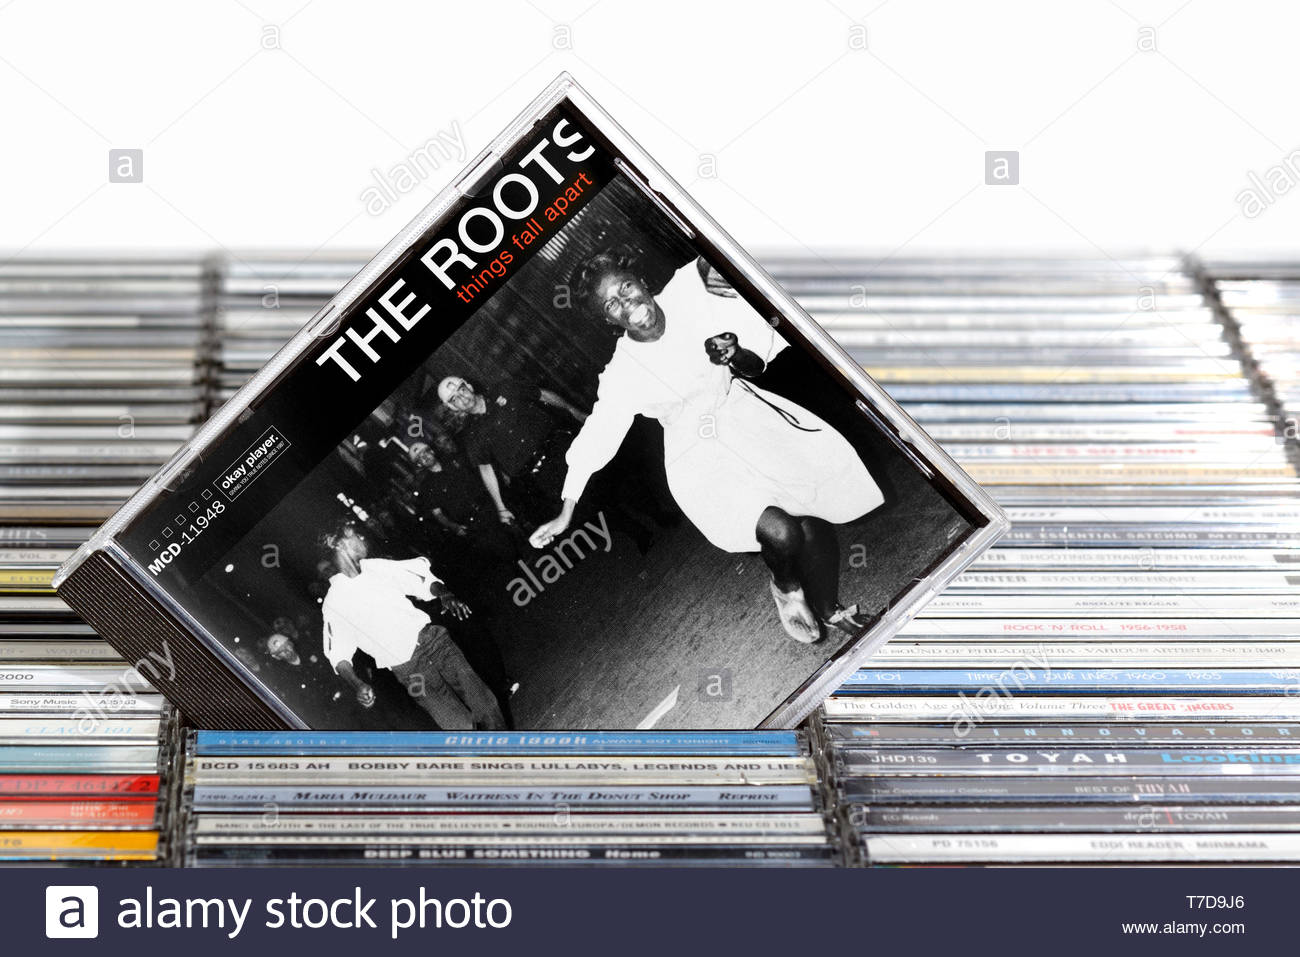 The Roots, Things Fall Apart album, CD music collection cases, England Stock Photo